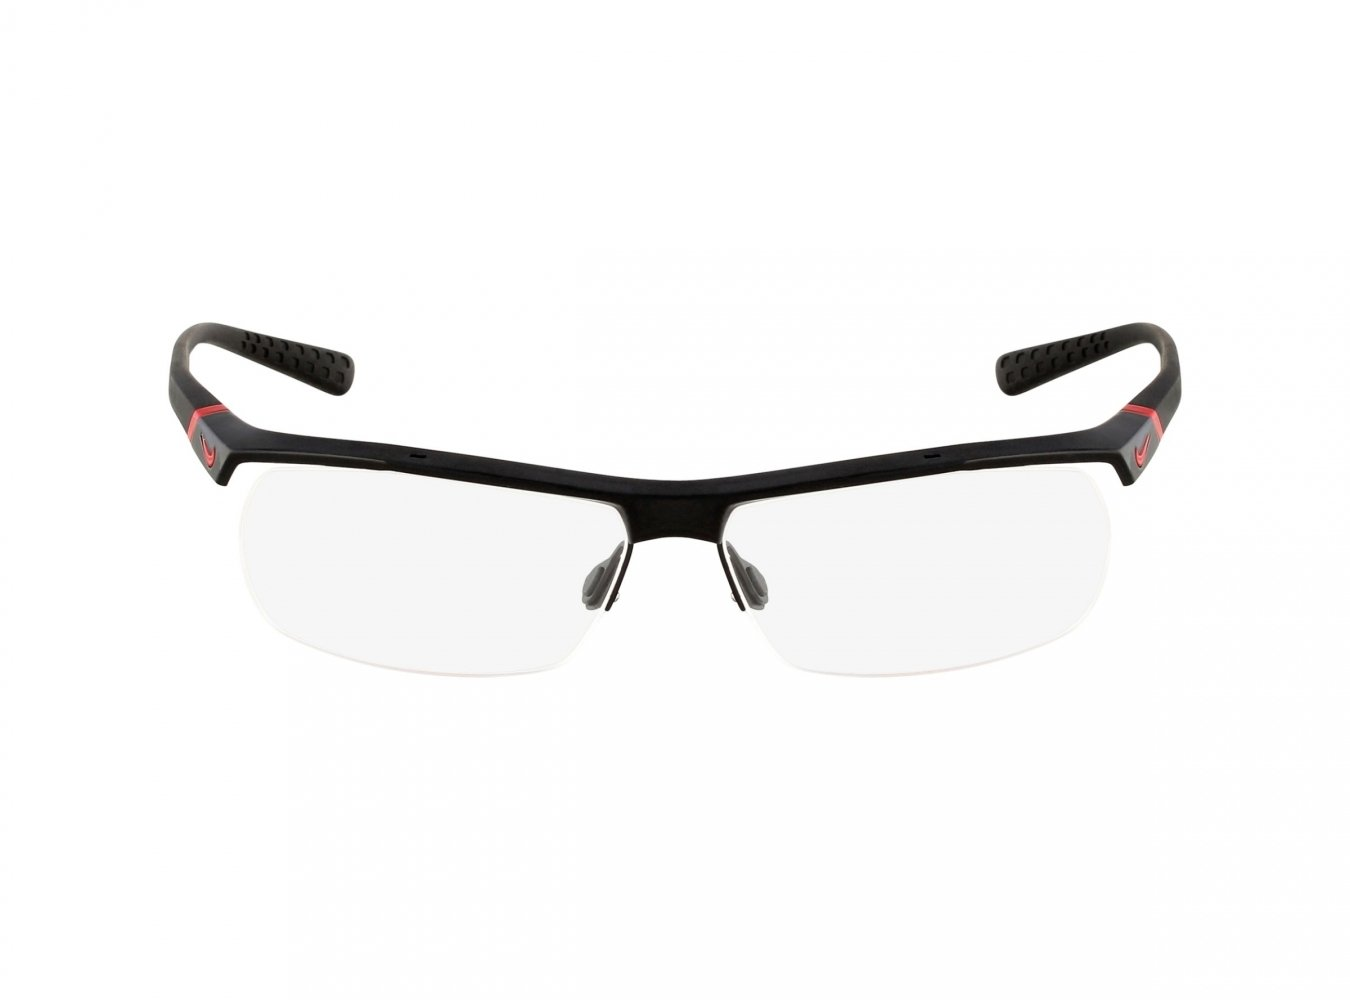 Nike Eyeglasses 7071/2 002 Gloss Black Demo 57 14 135 by NIKE